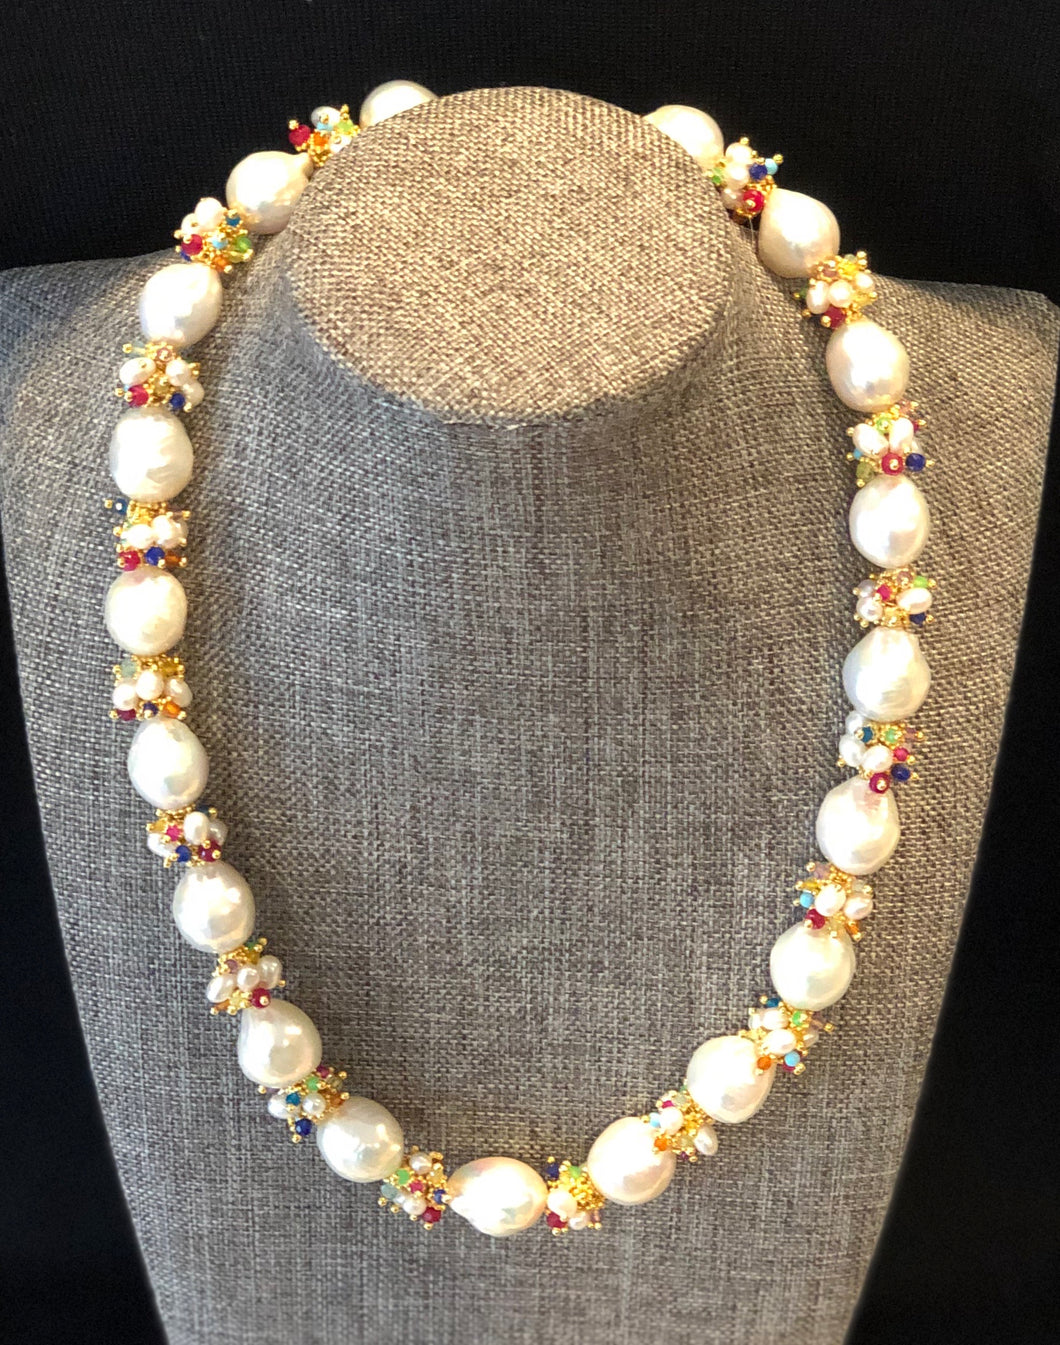 Baroque Pearl Necklace with Rainbow Clusters